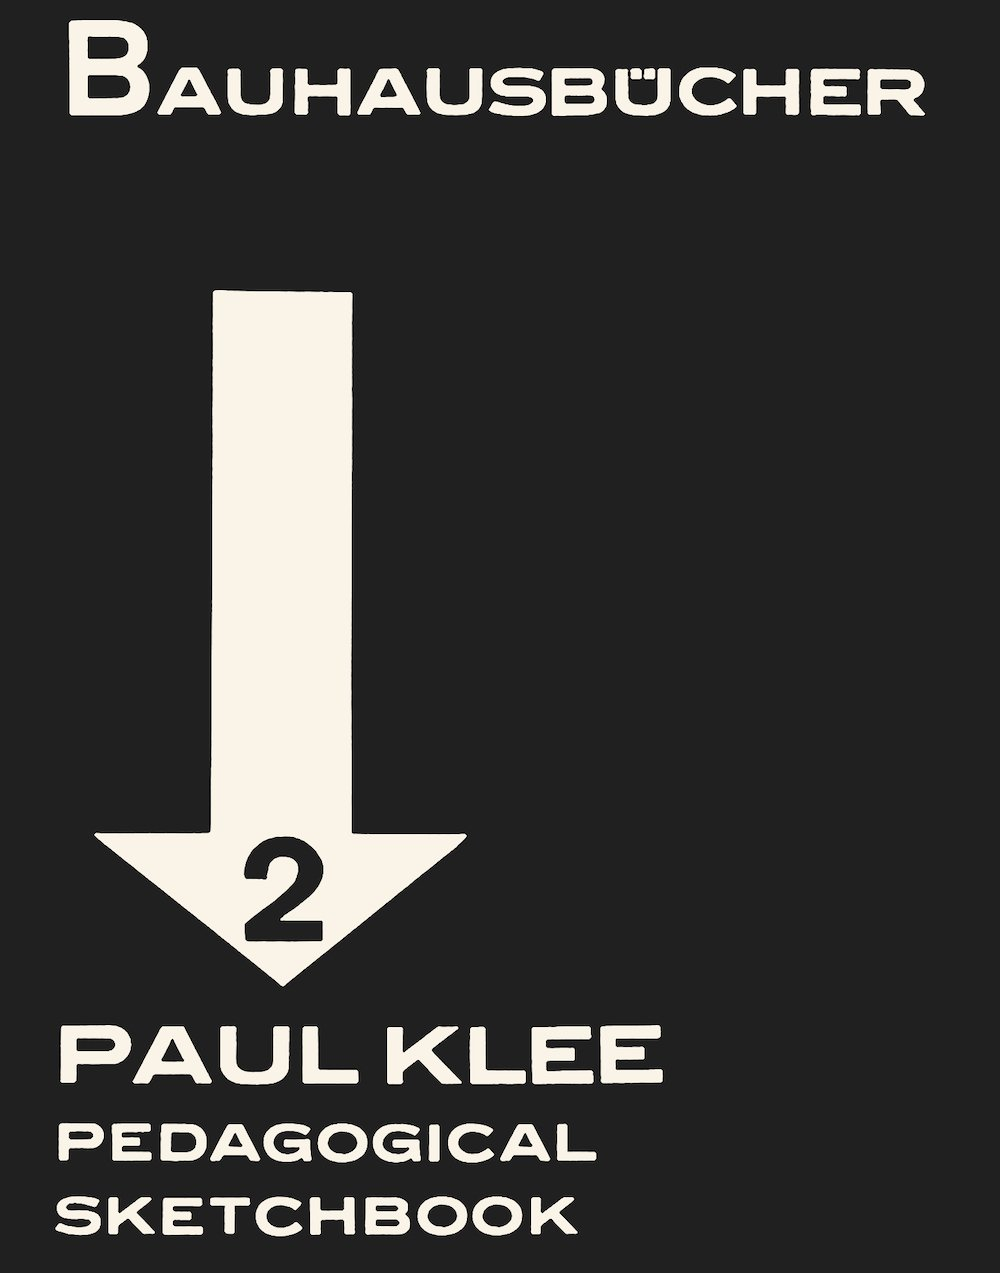 Pedagogical Sketchbook, Paul Klee by Lars Müller Publishers